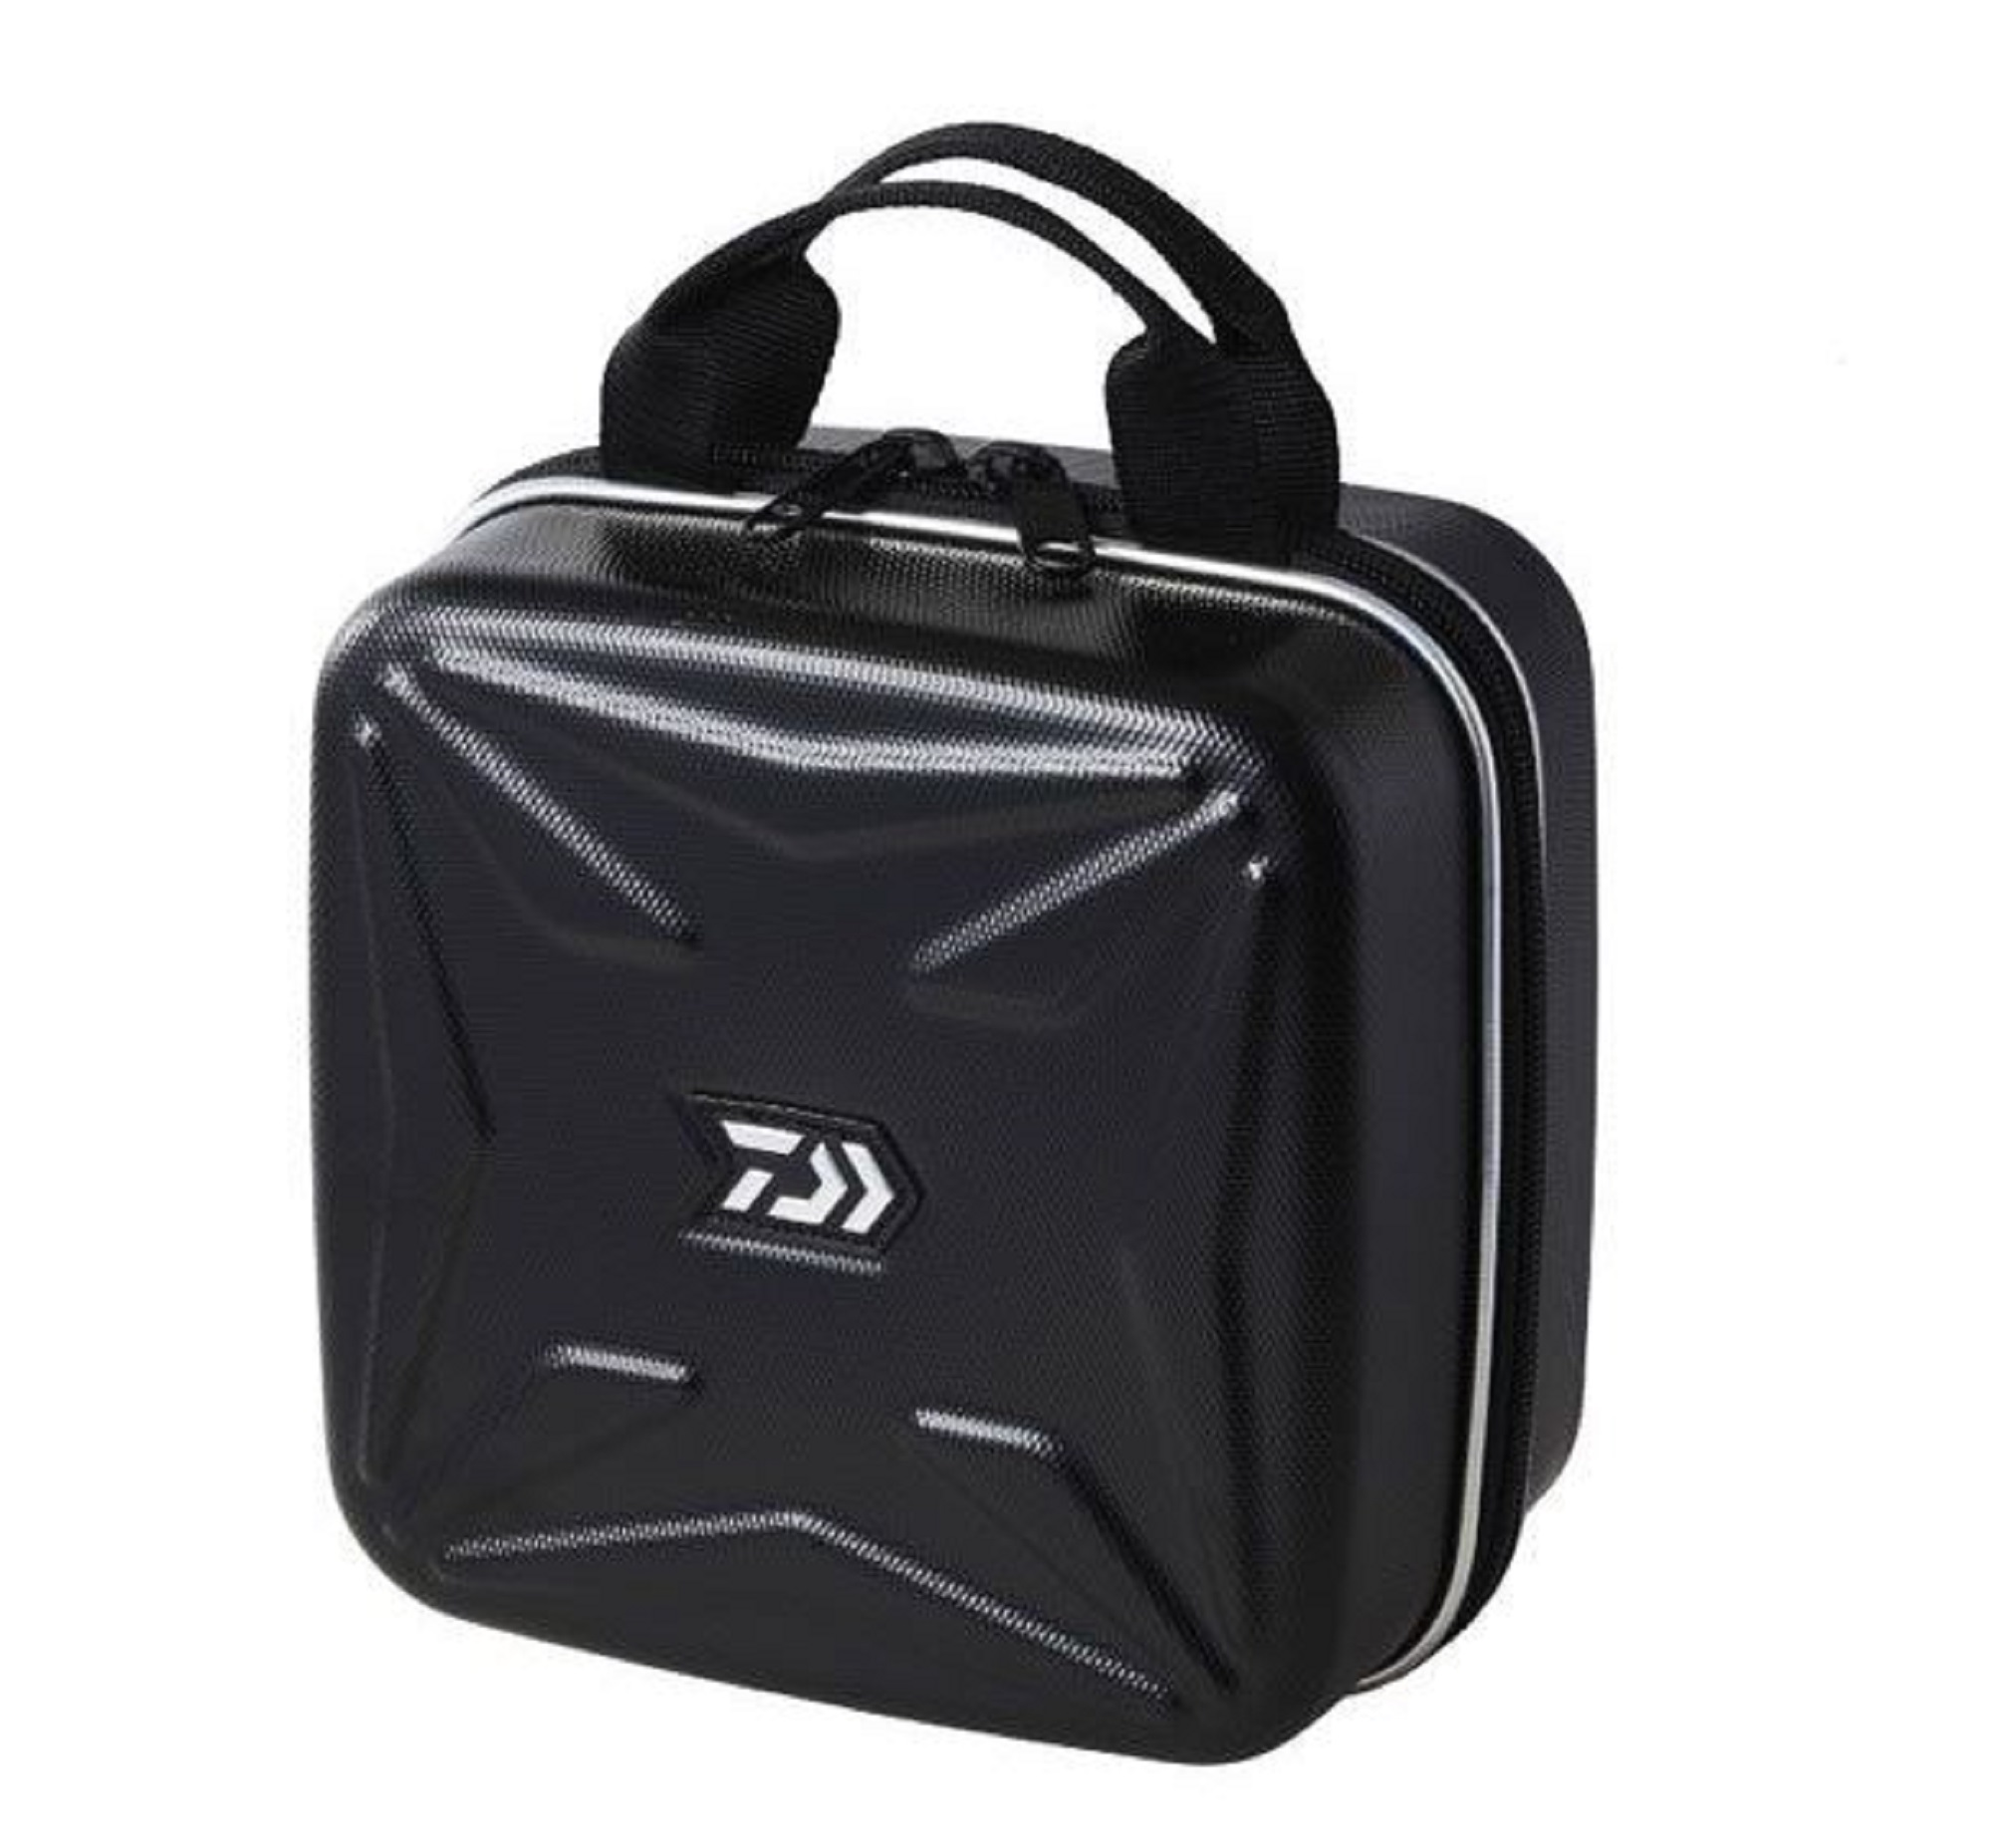 Daiwa Bag HD Reel Cover SP-L For Size 4500-6000/LT5000 (0563)